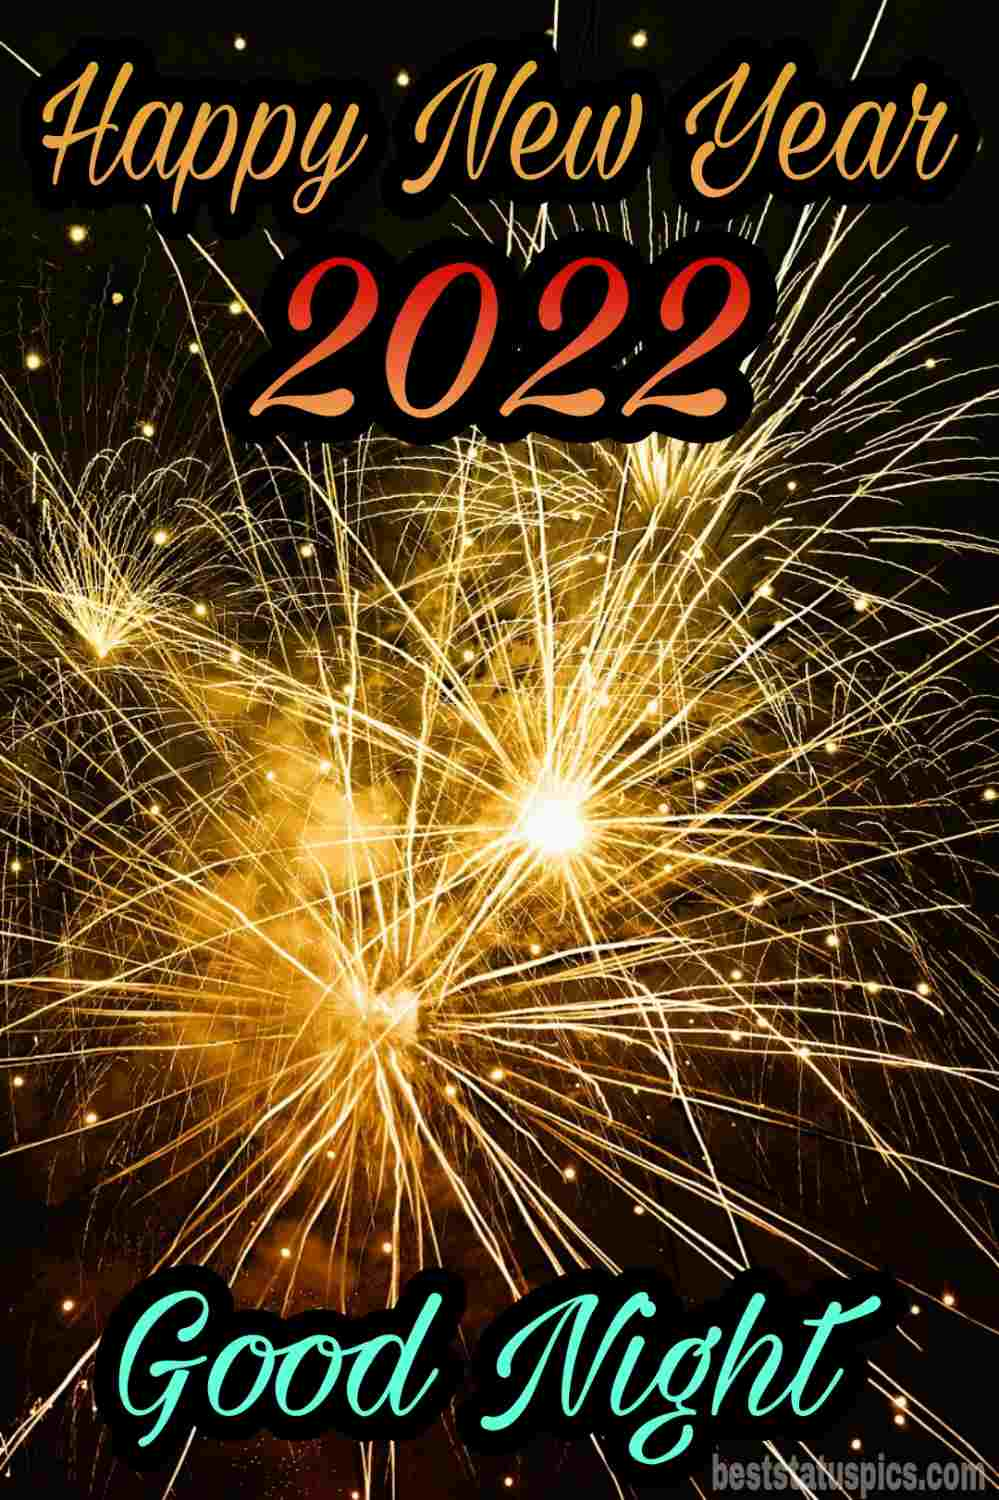 Beautiful Good night Happy new year 2022 wishes images HD with fireworks for friends